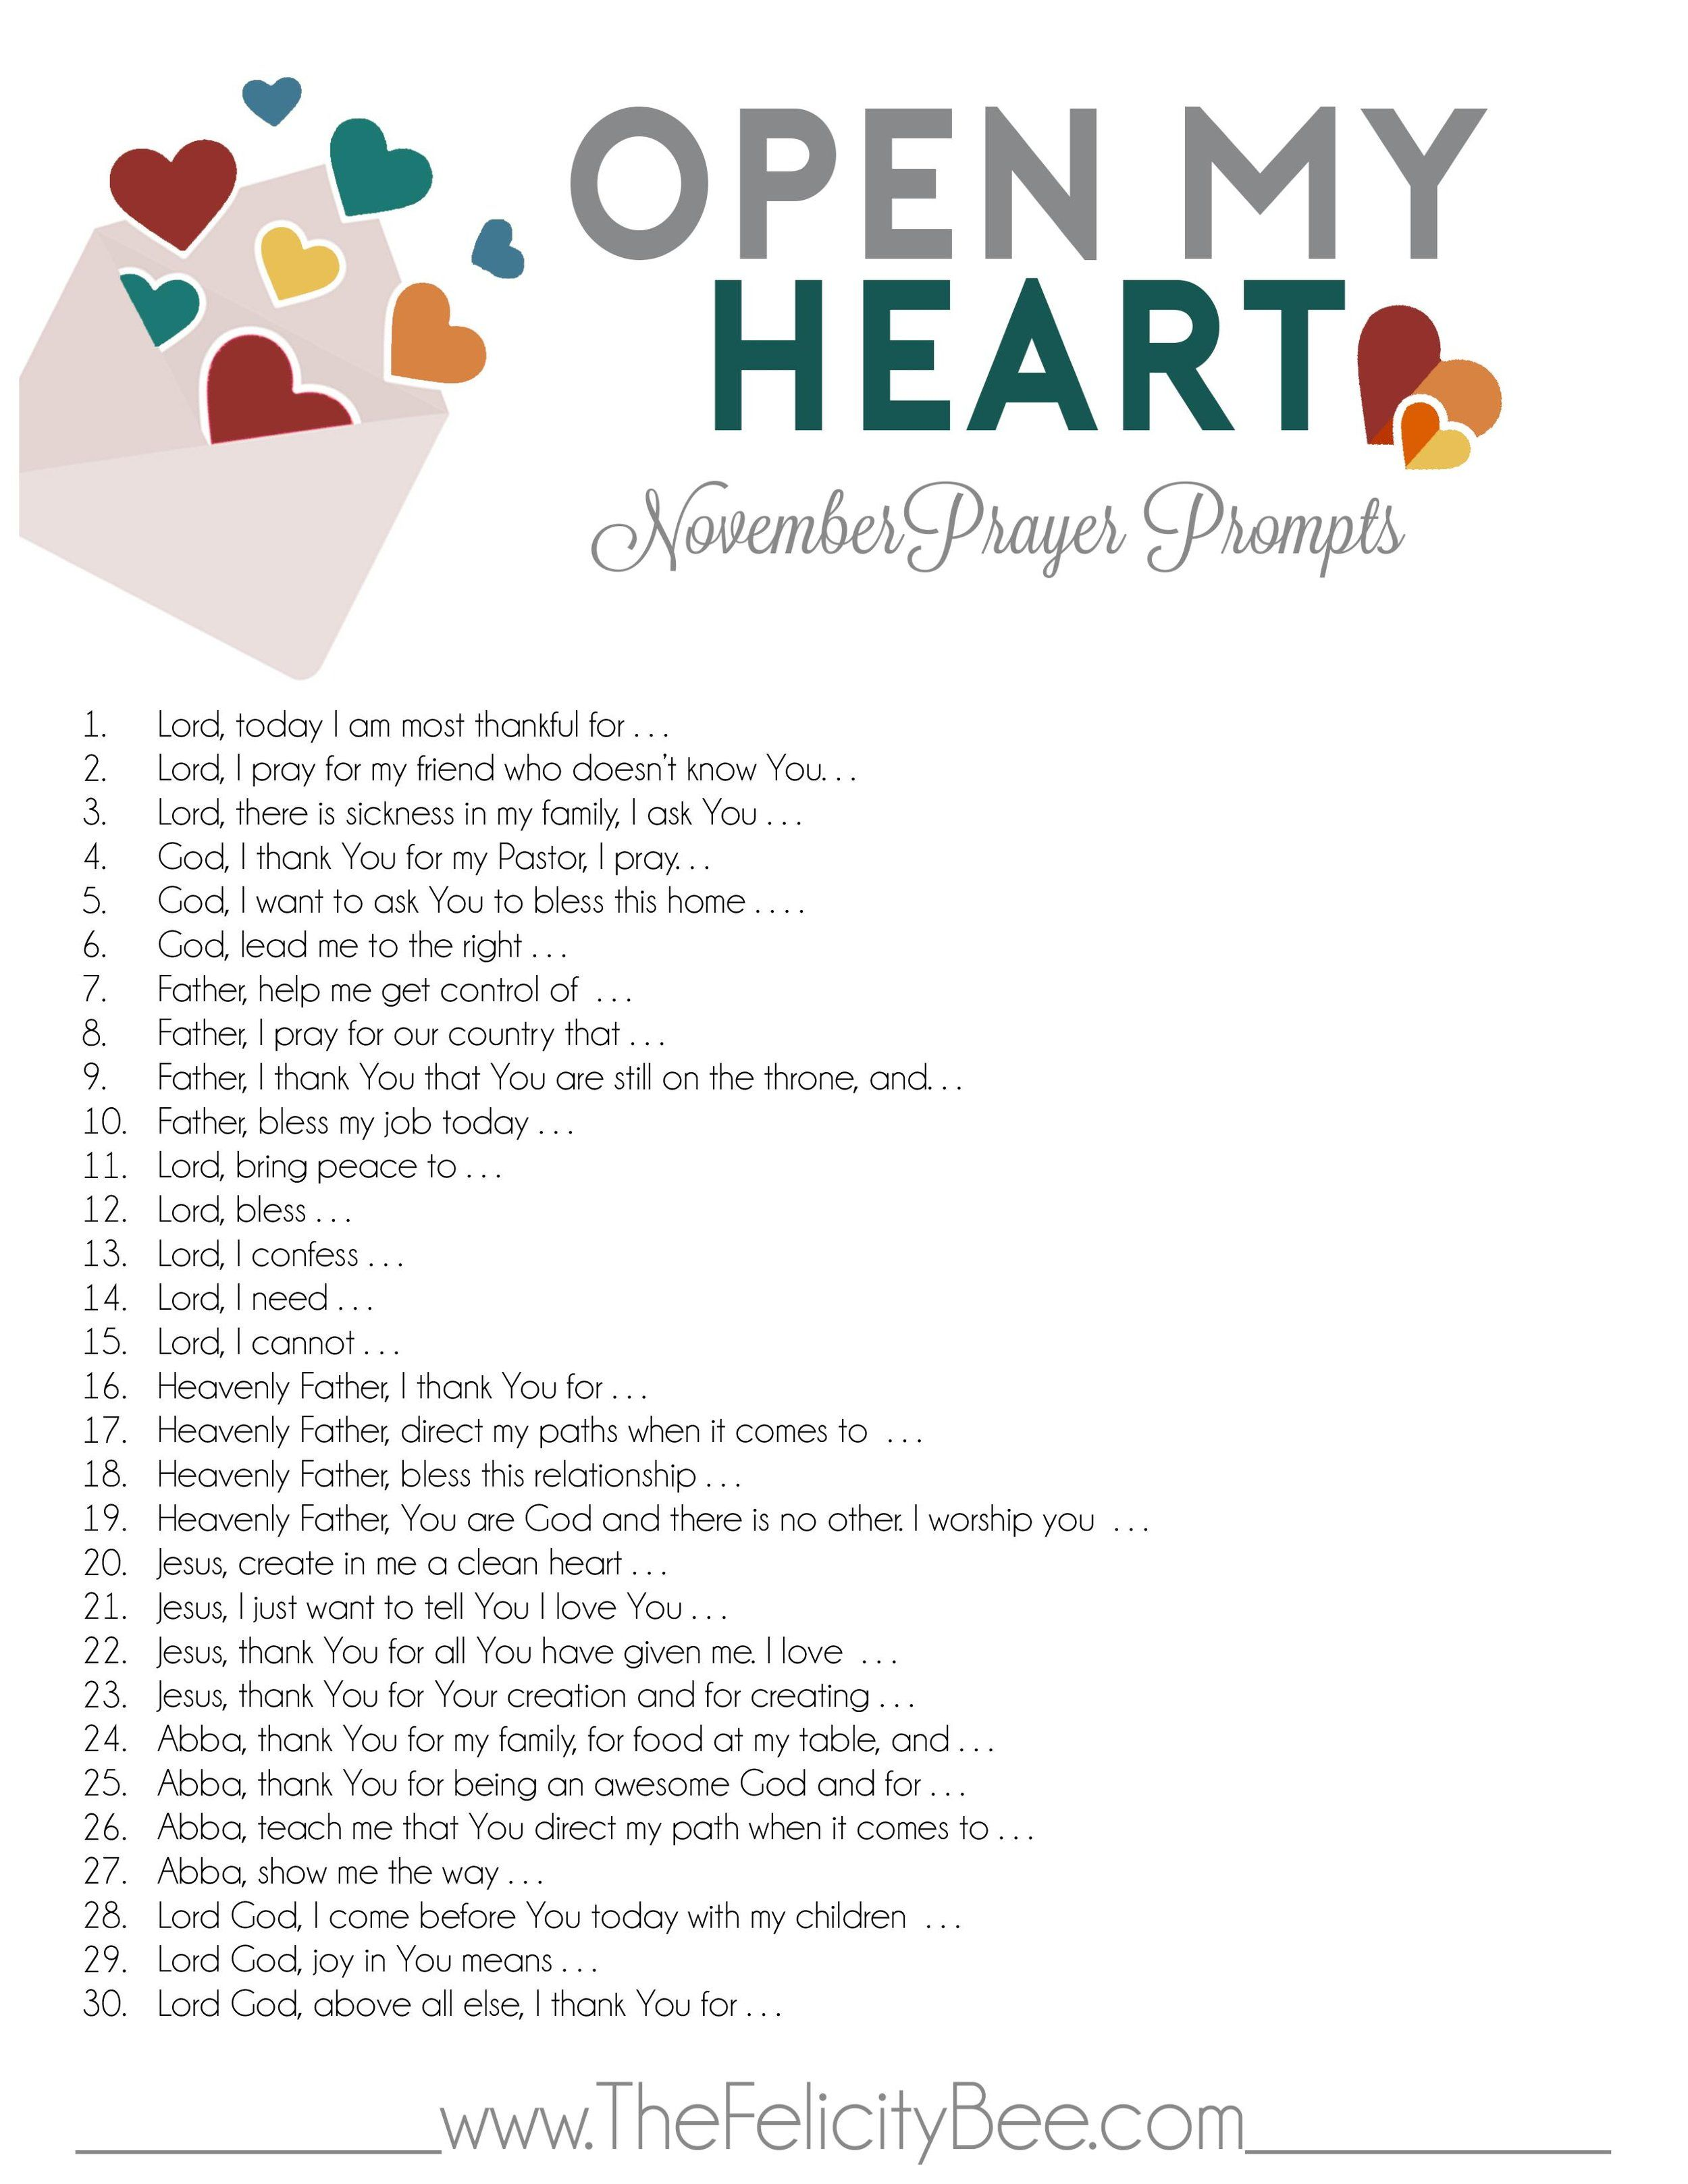 Wedding decorations at church november 2018 Open My Heart November Prayer Prompts  Prompts